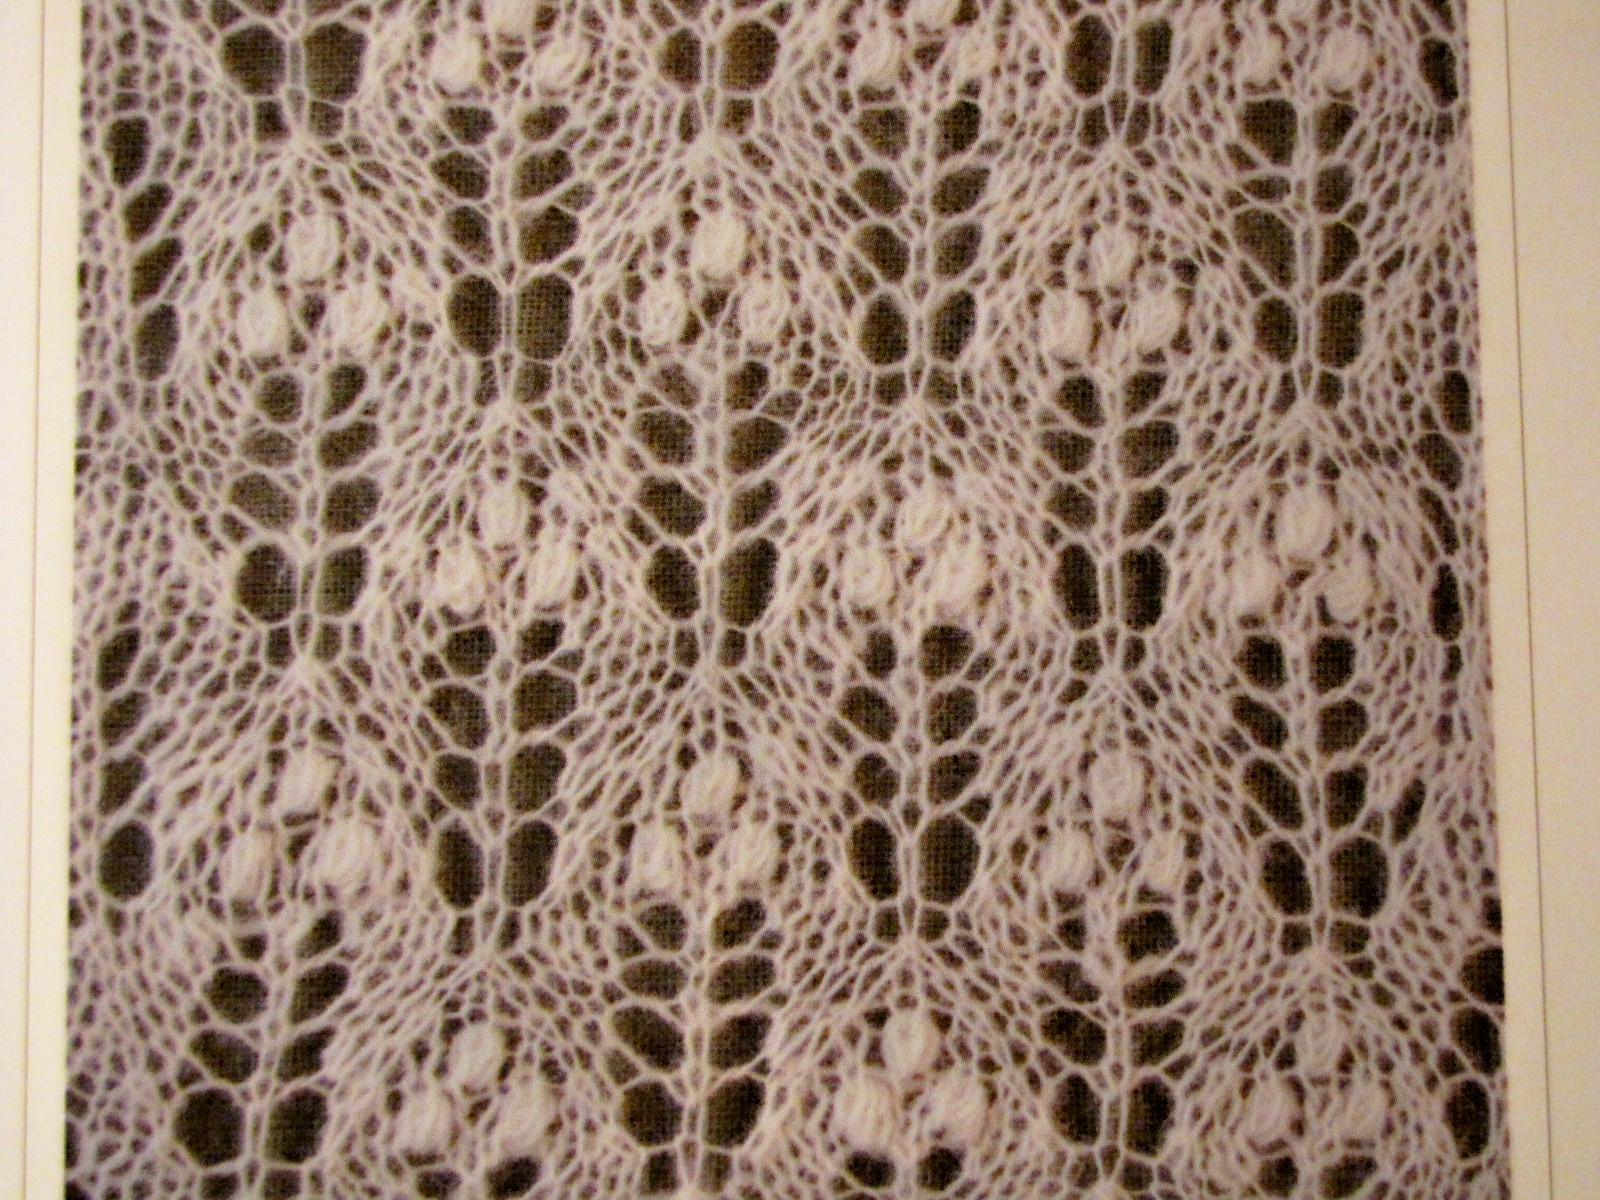 Estonian Lace Knitting - Session One   Craftini: My Daily ...